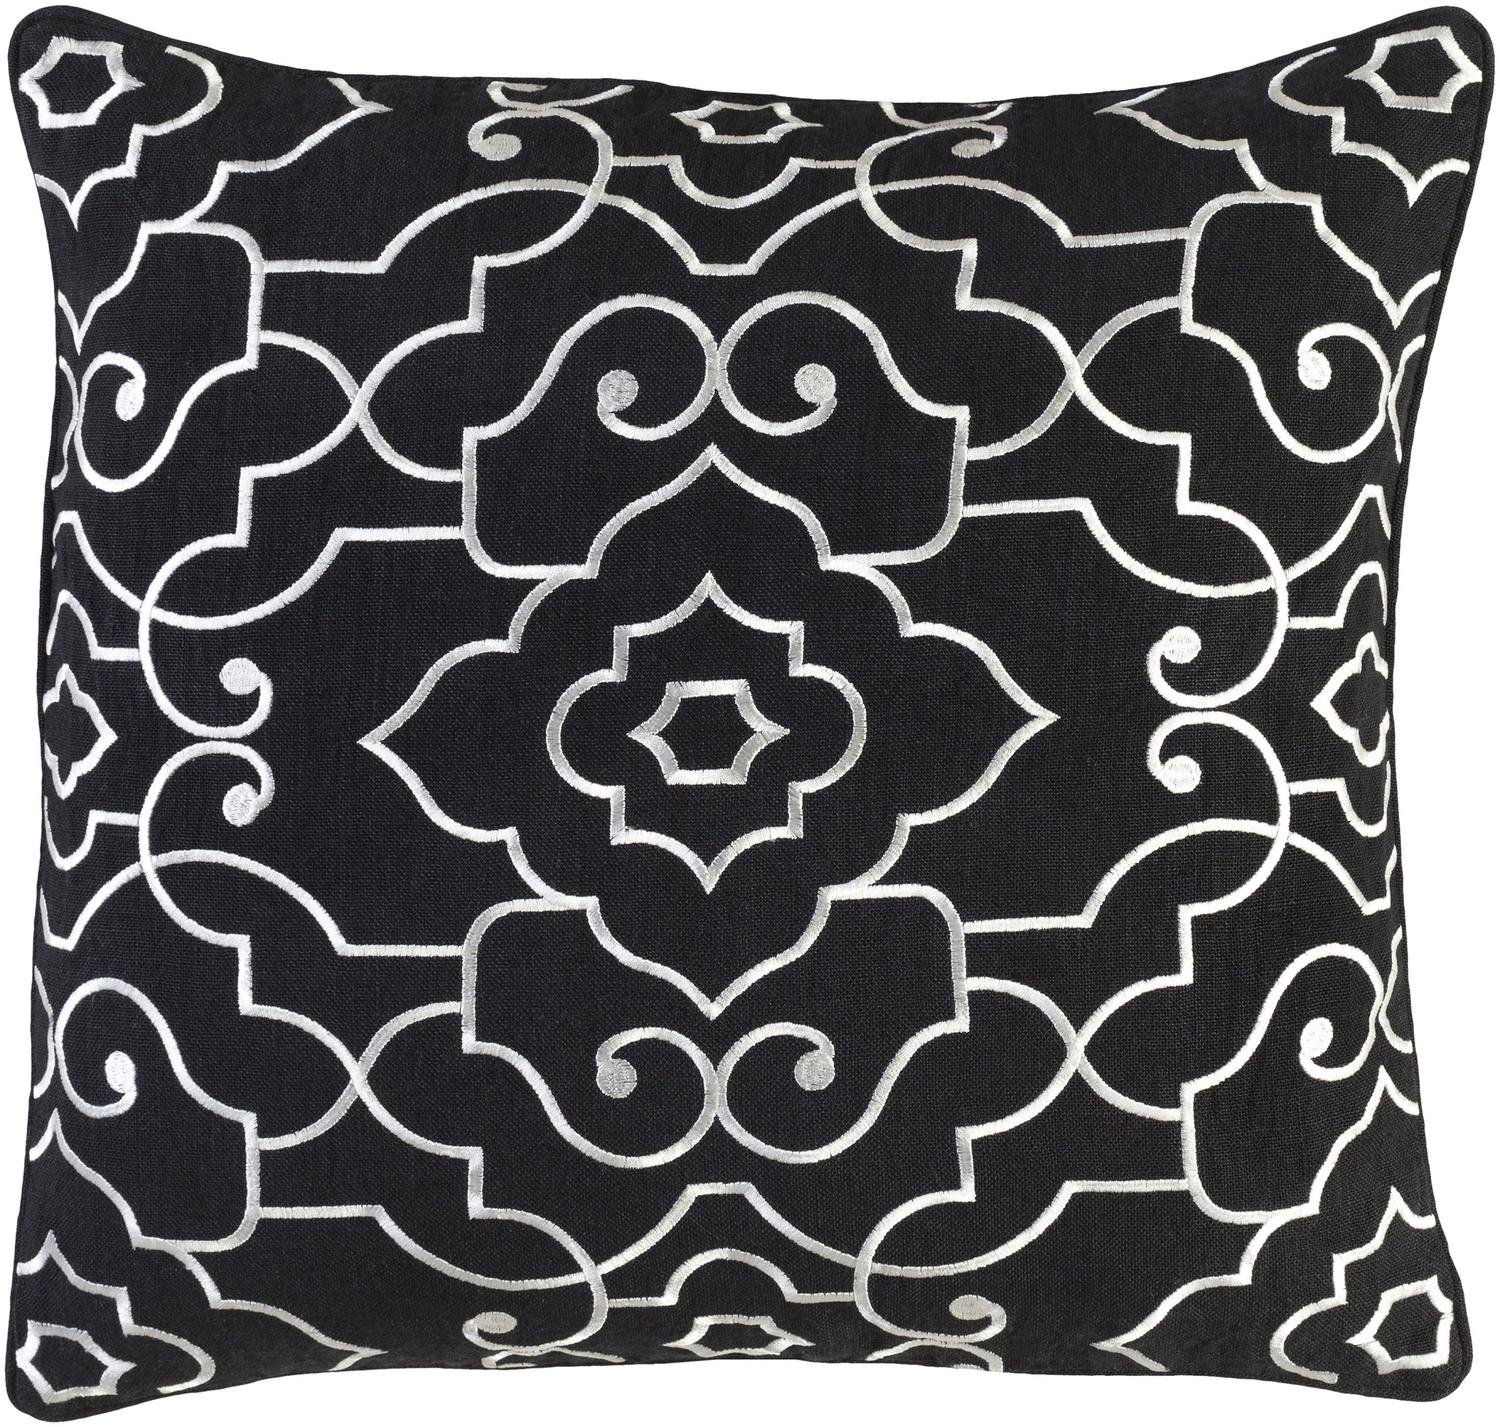 20'' Licorice Black and White Woven Decorative Throw Pillow – Down Filler